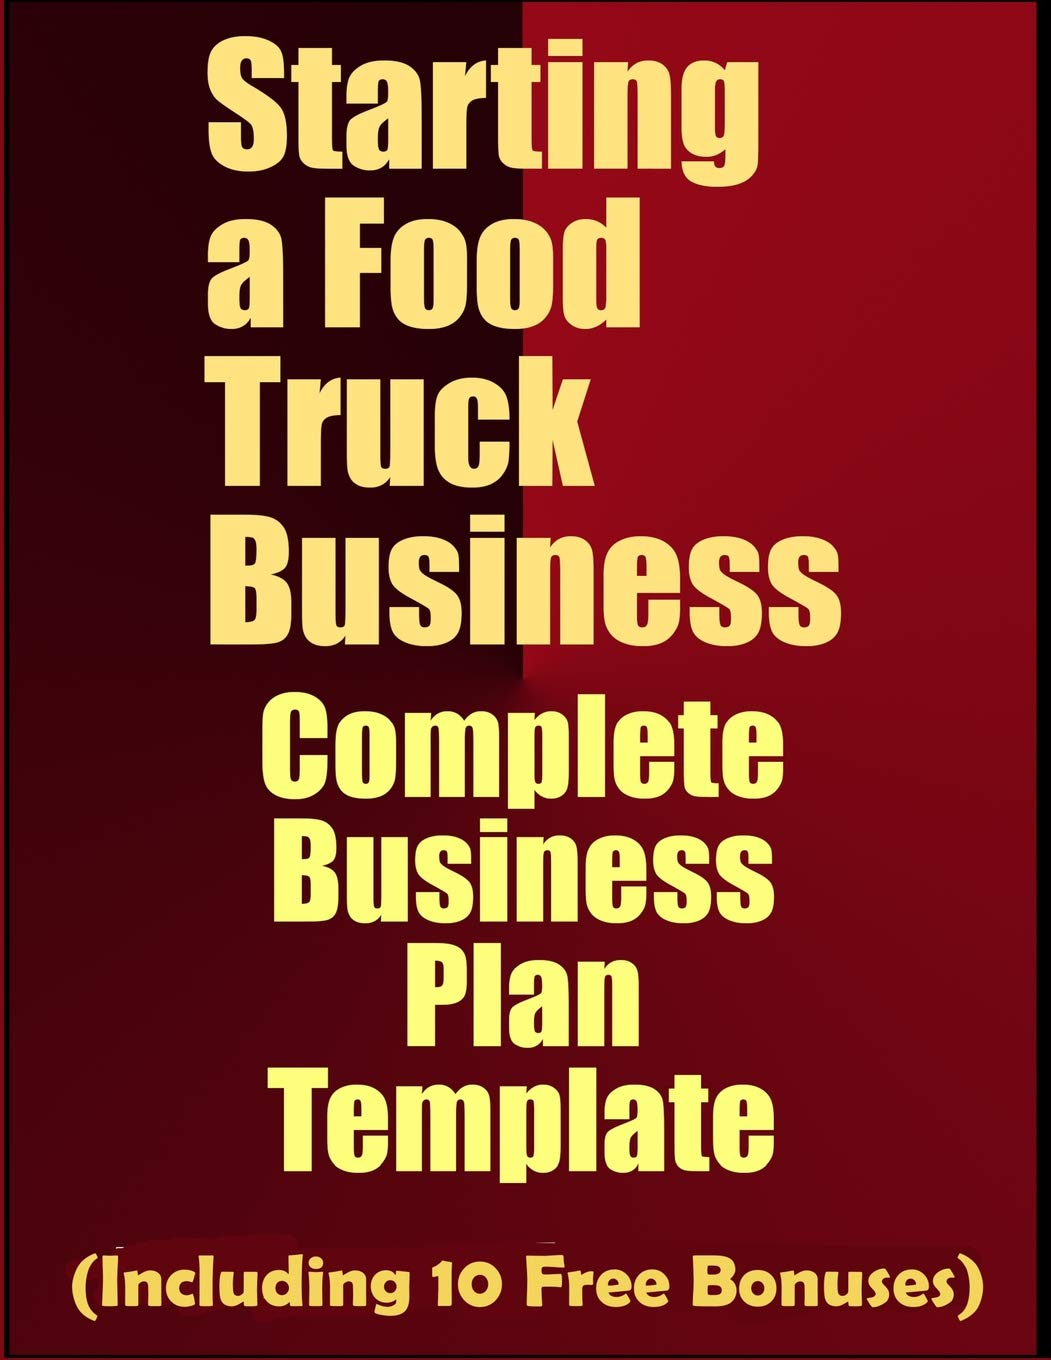 Starting A Food Truck Business Complete Business Plan